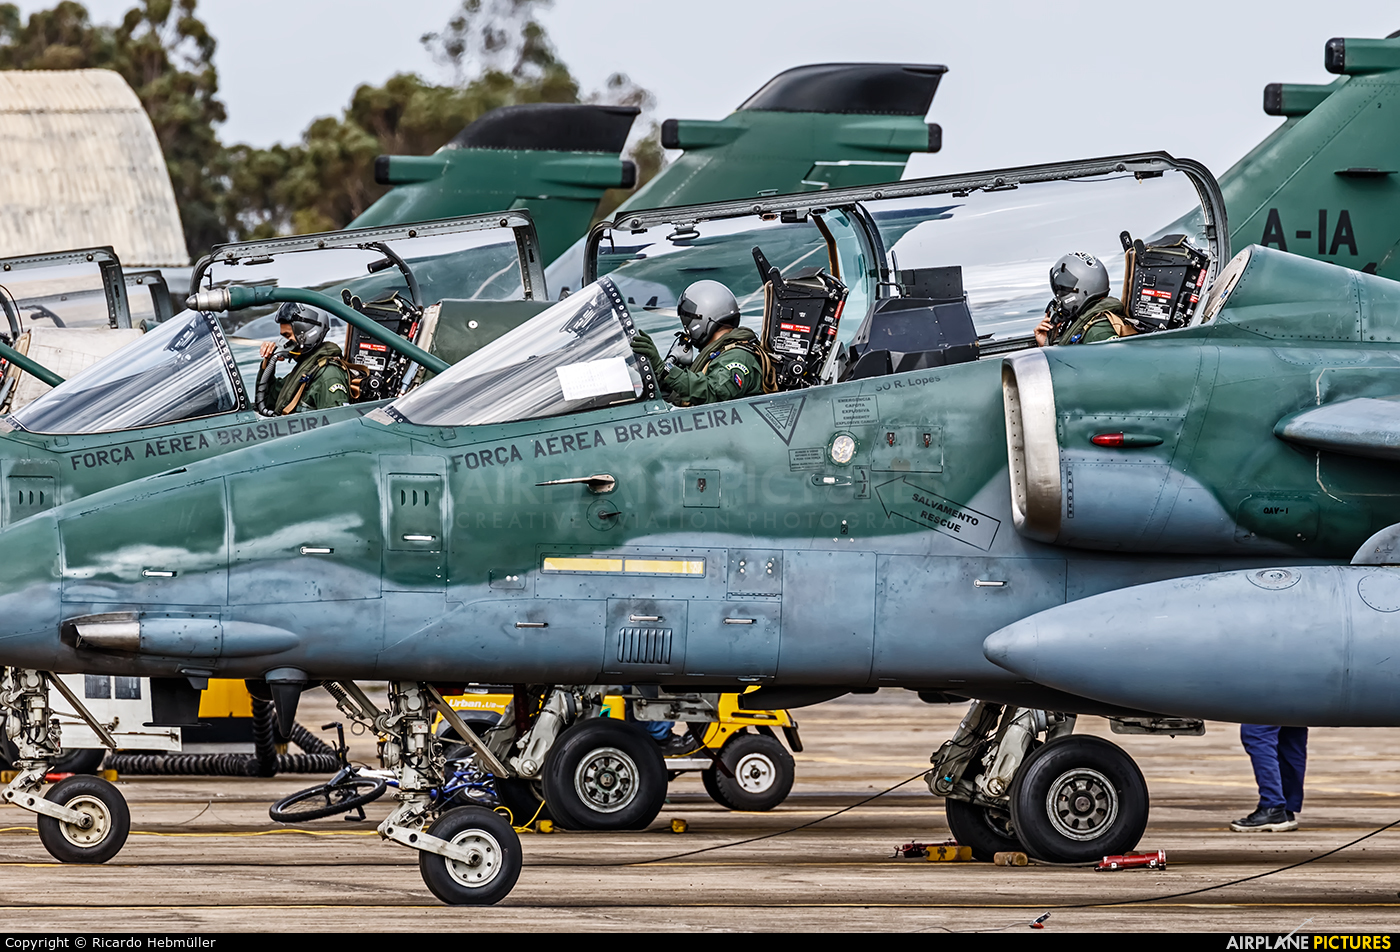 Brazil - Air Force 5660 aircraft at Undisclosed Location